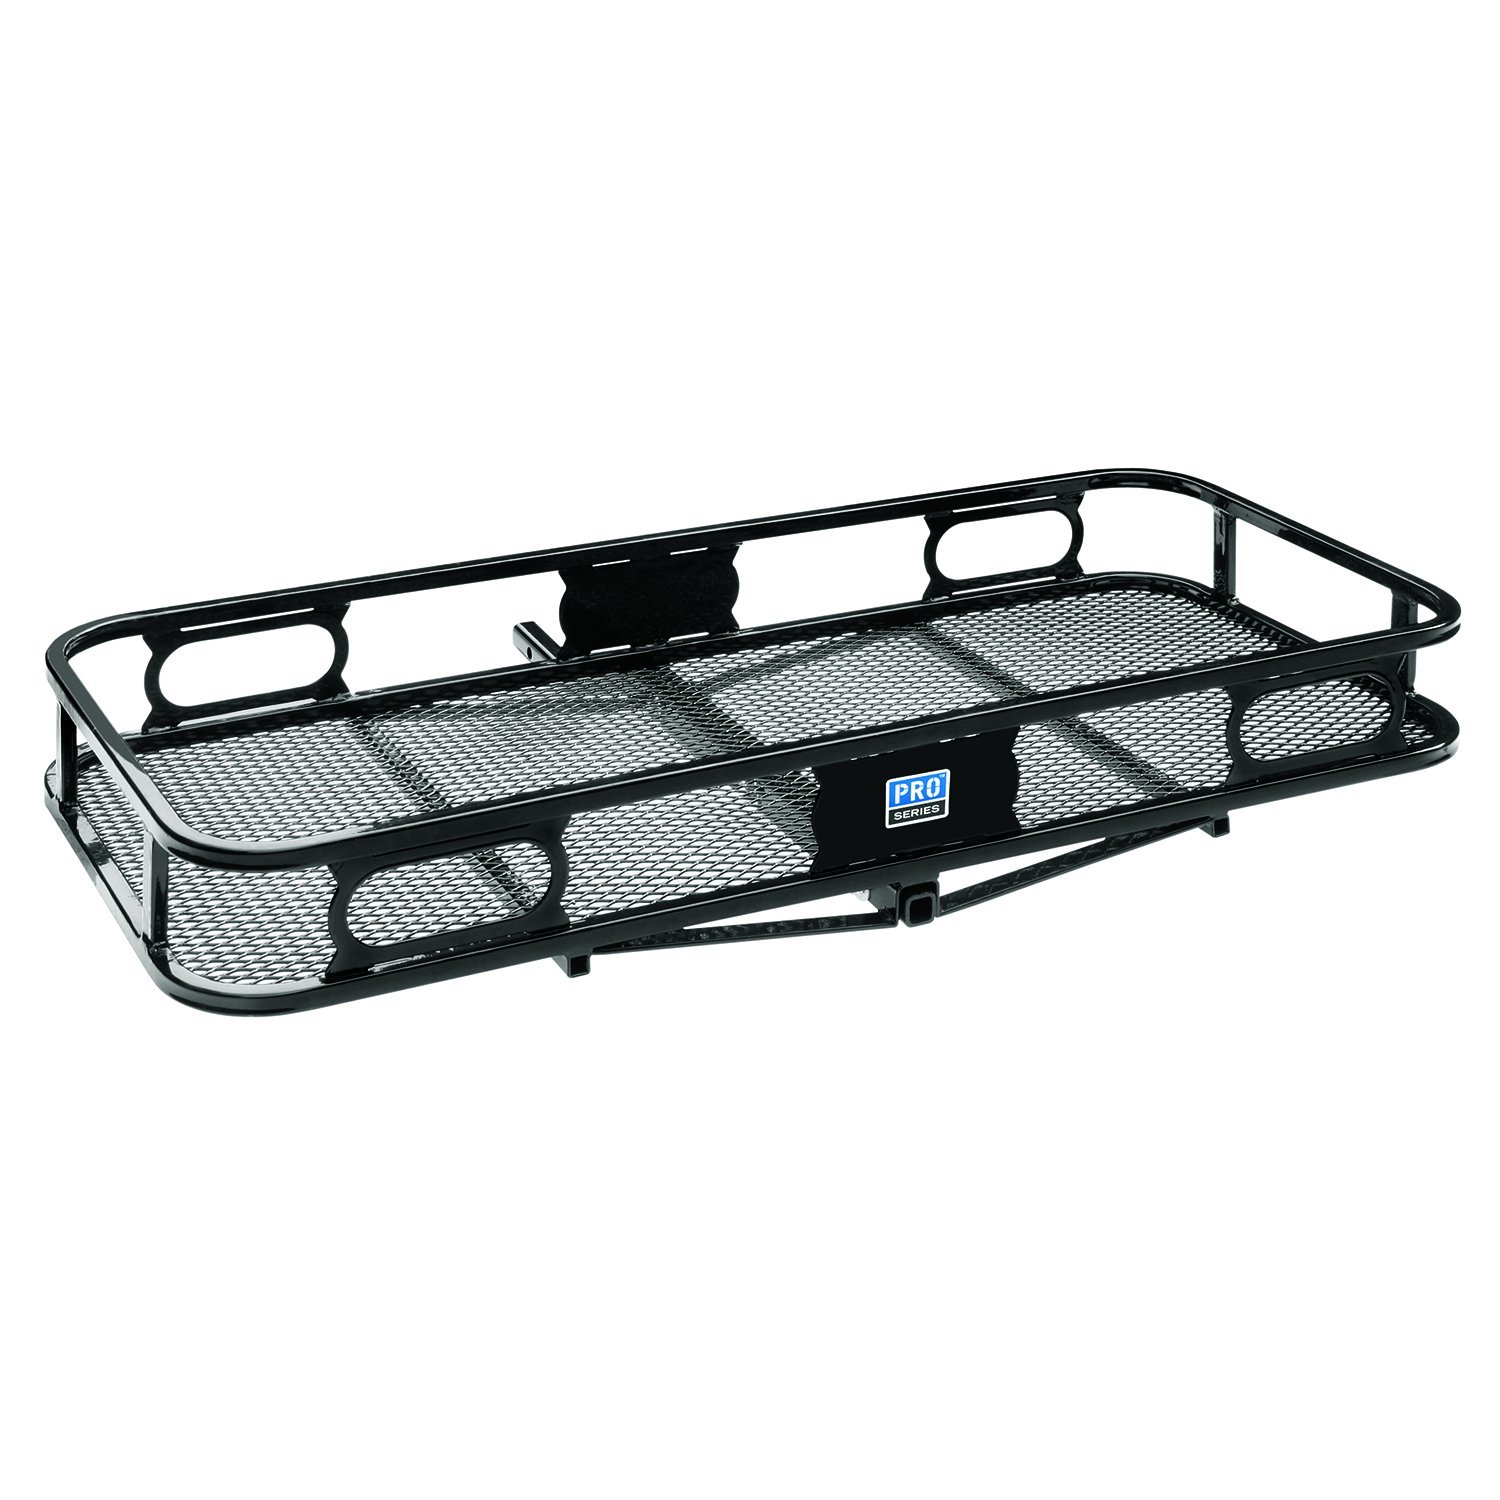 "Pro Series 63155 Rambler Hitch Cargo Carrier for 1-1/4"" Receivers Pro-Series"